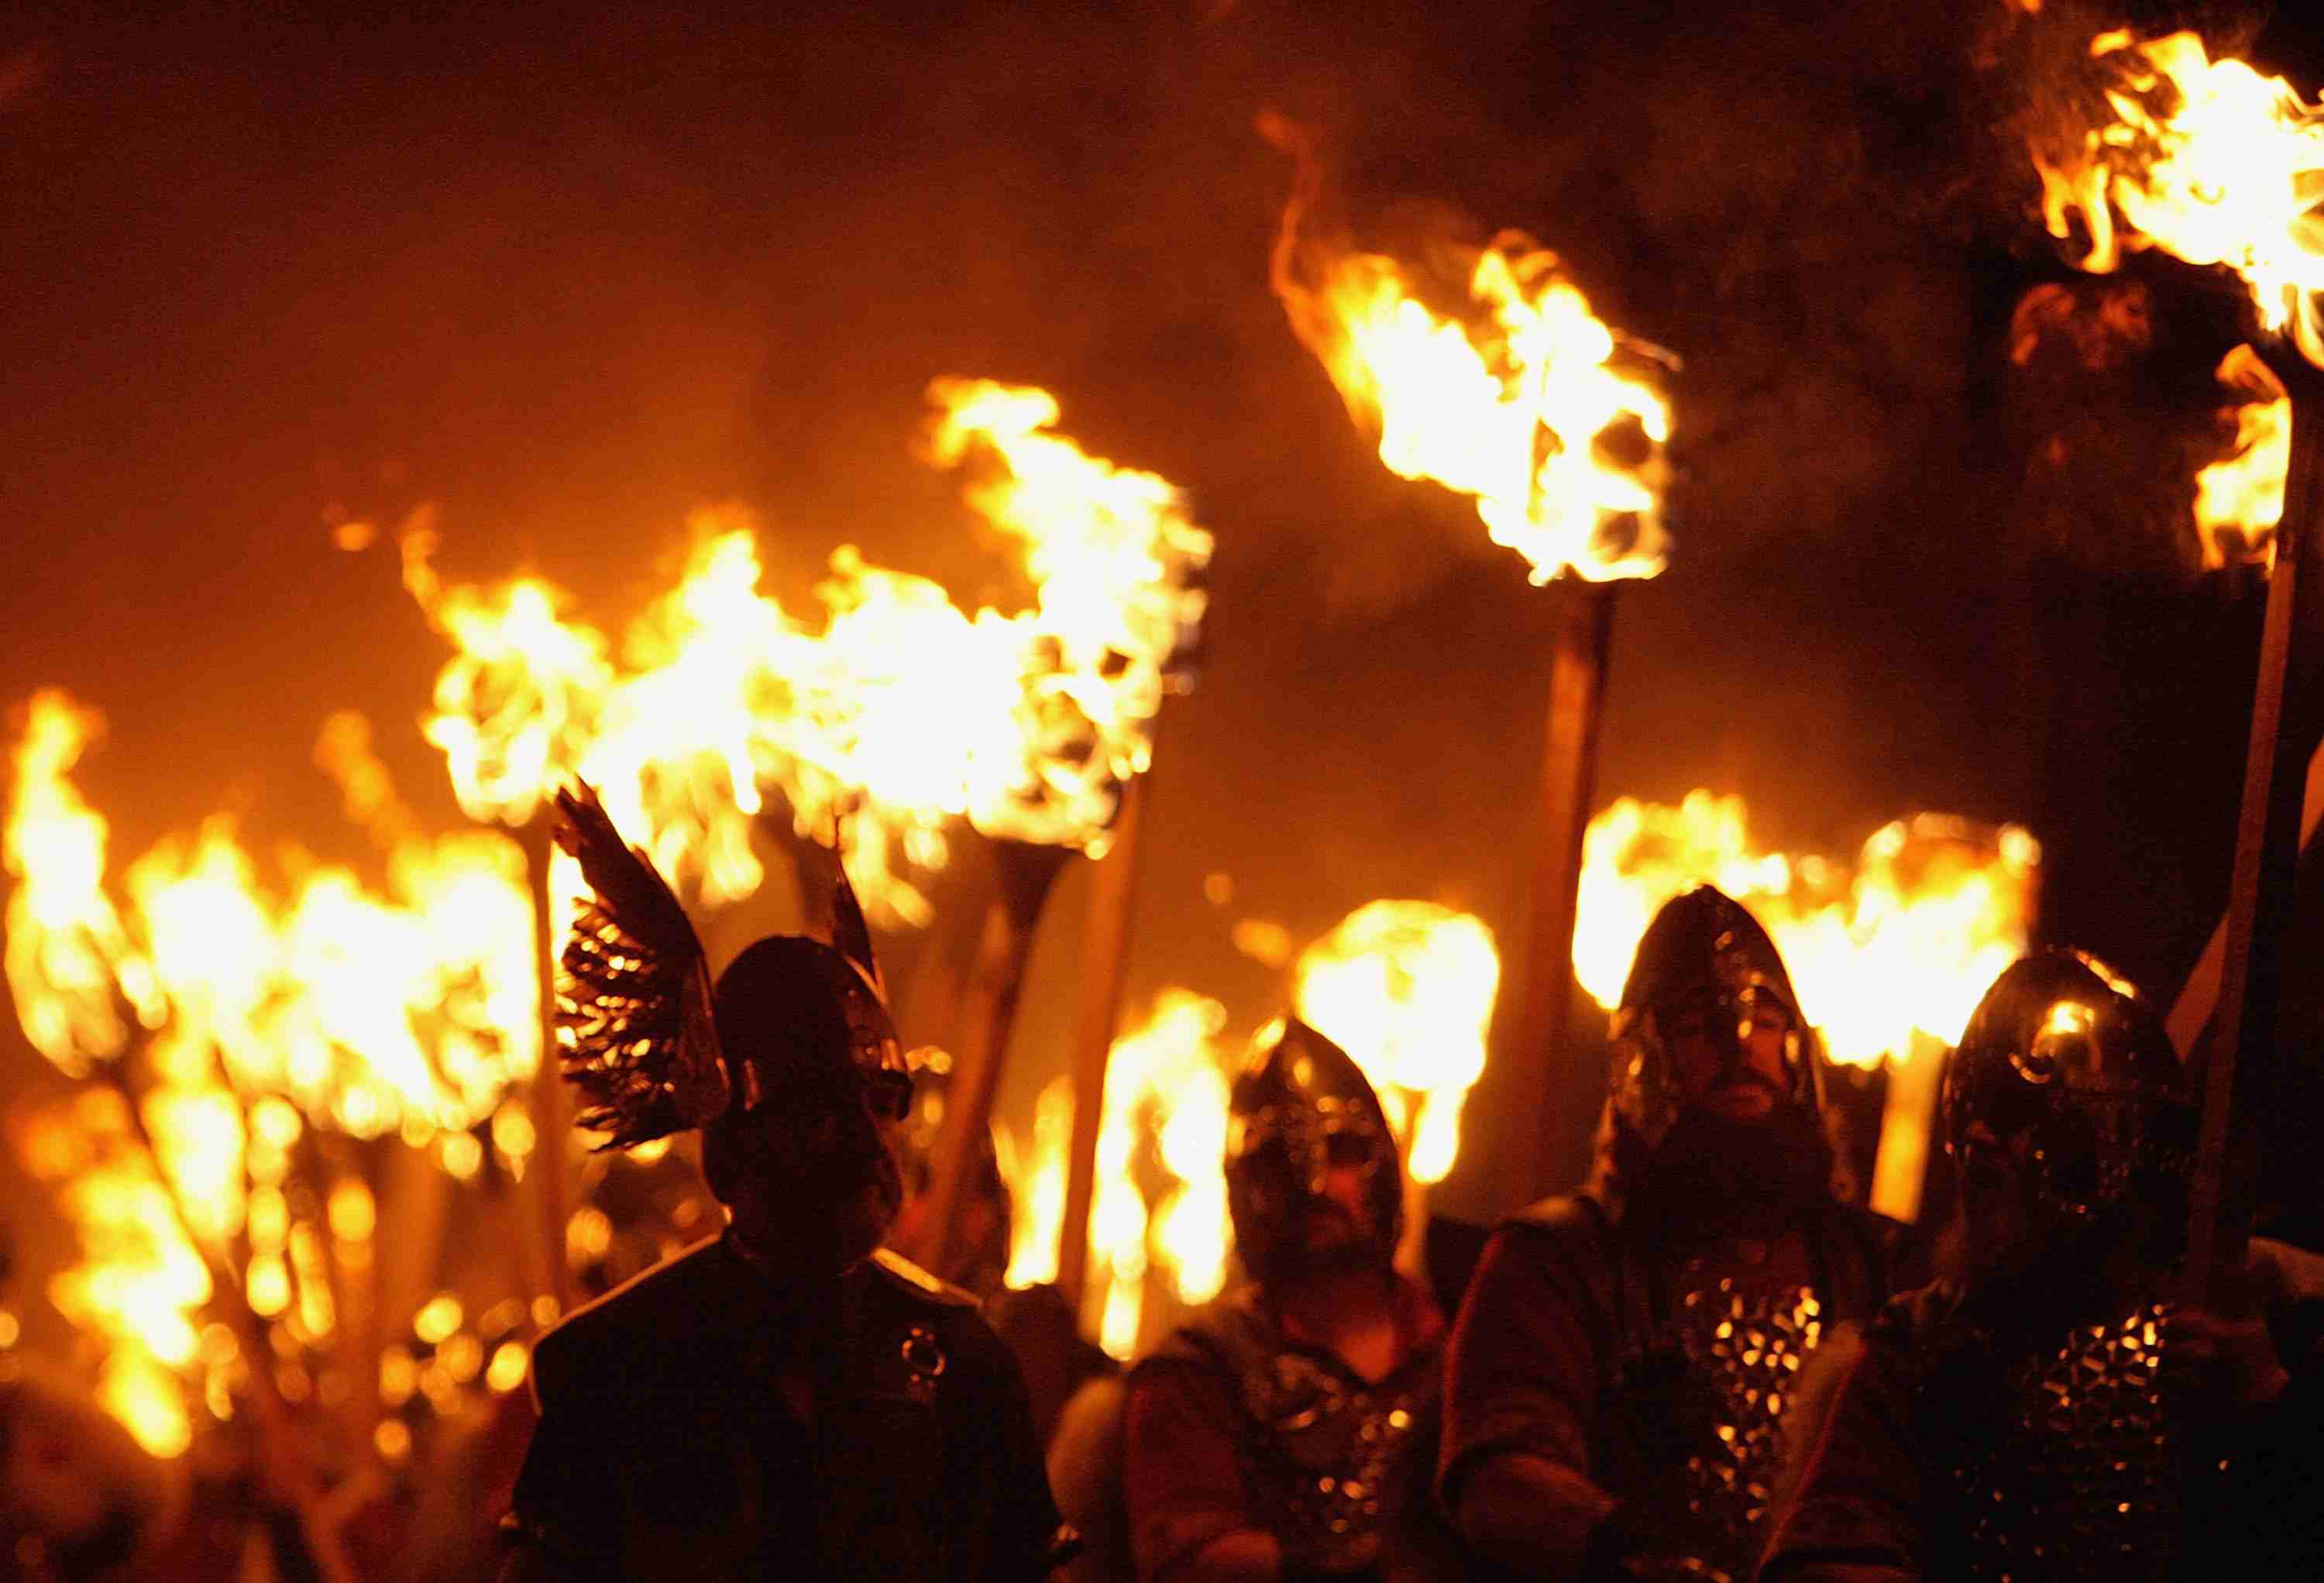 Pagans with torches